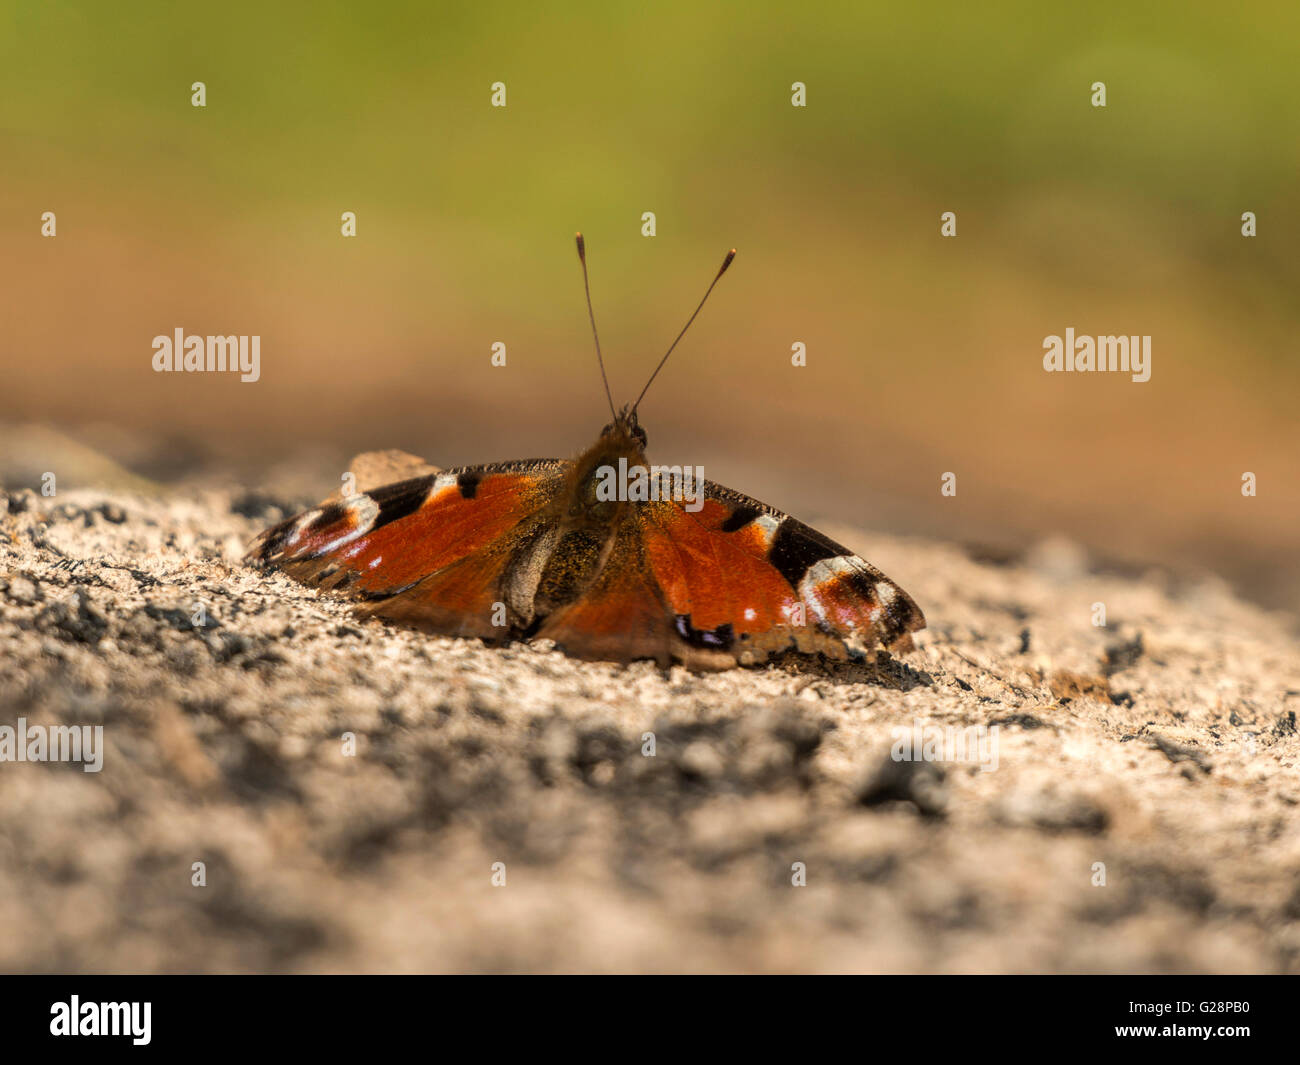 Beautiful Peacock Butterfly (Aglais io) depicted resting tentatively on remnant ashes from an overnight camp fire. - Stock Image